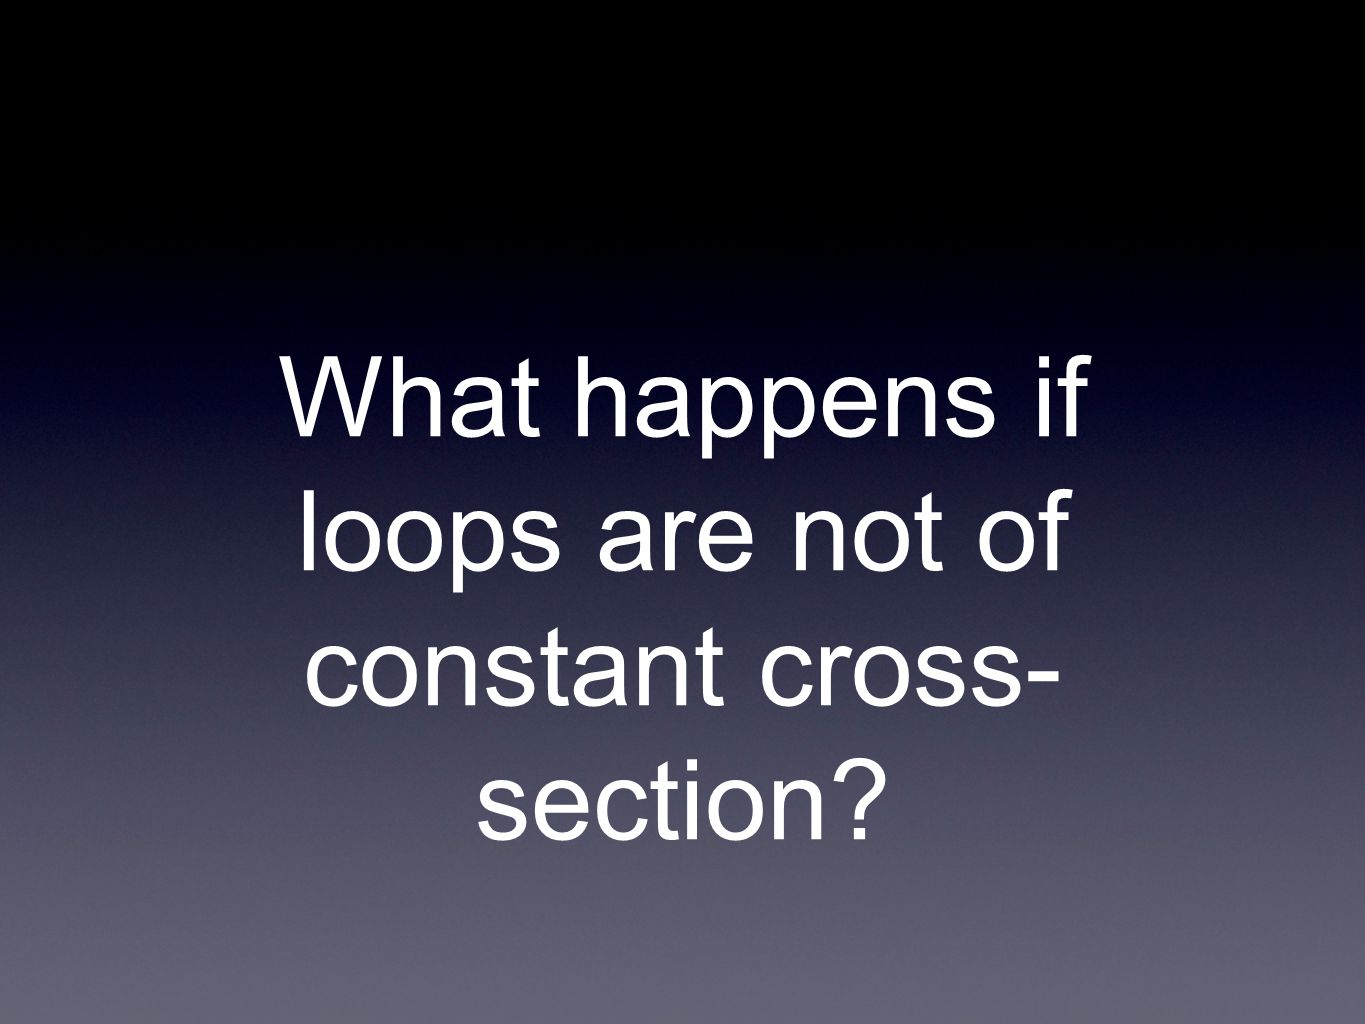 What happens if loops are not of constant cross- section